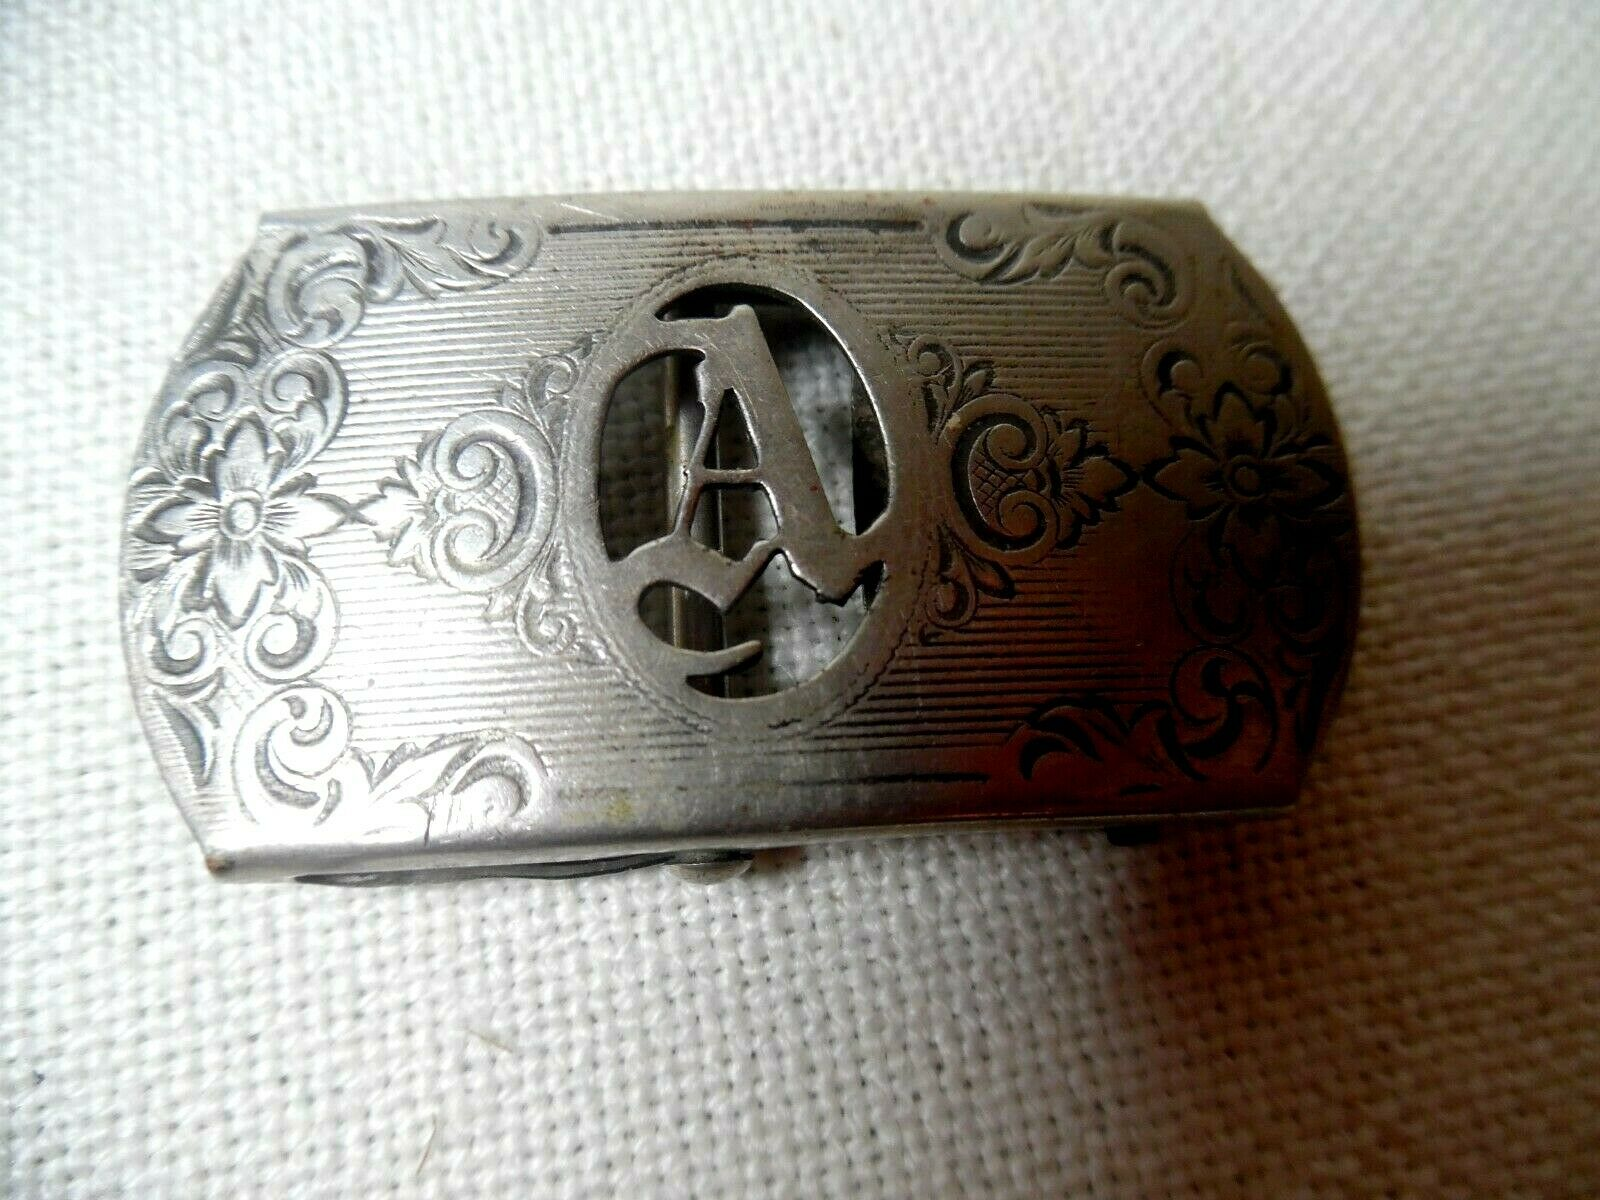 ANTIQUE 1918 LADIES ORNATE NICKLE SILVER BELT BUCKLE WITH CUTOUT INITIAL A